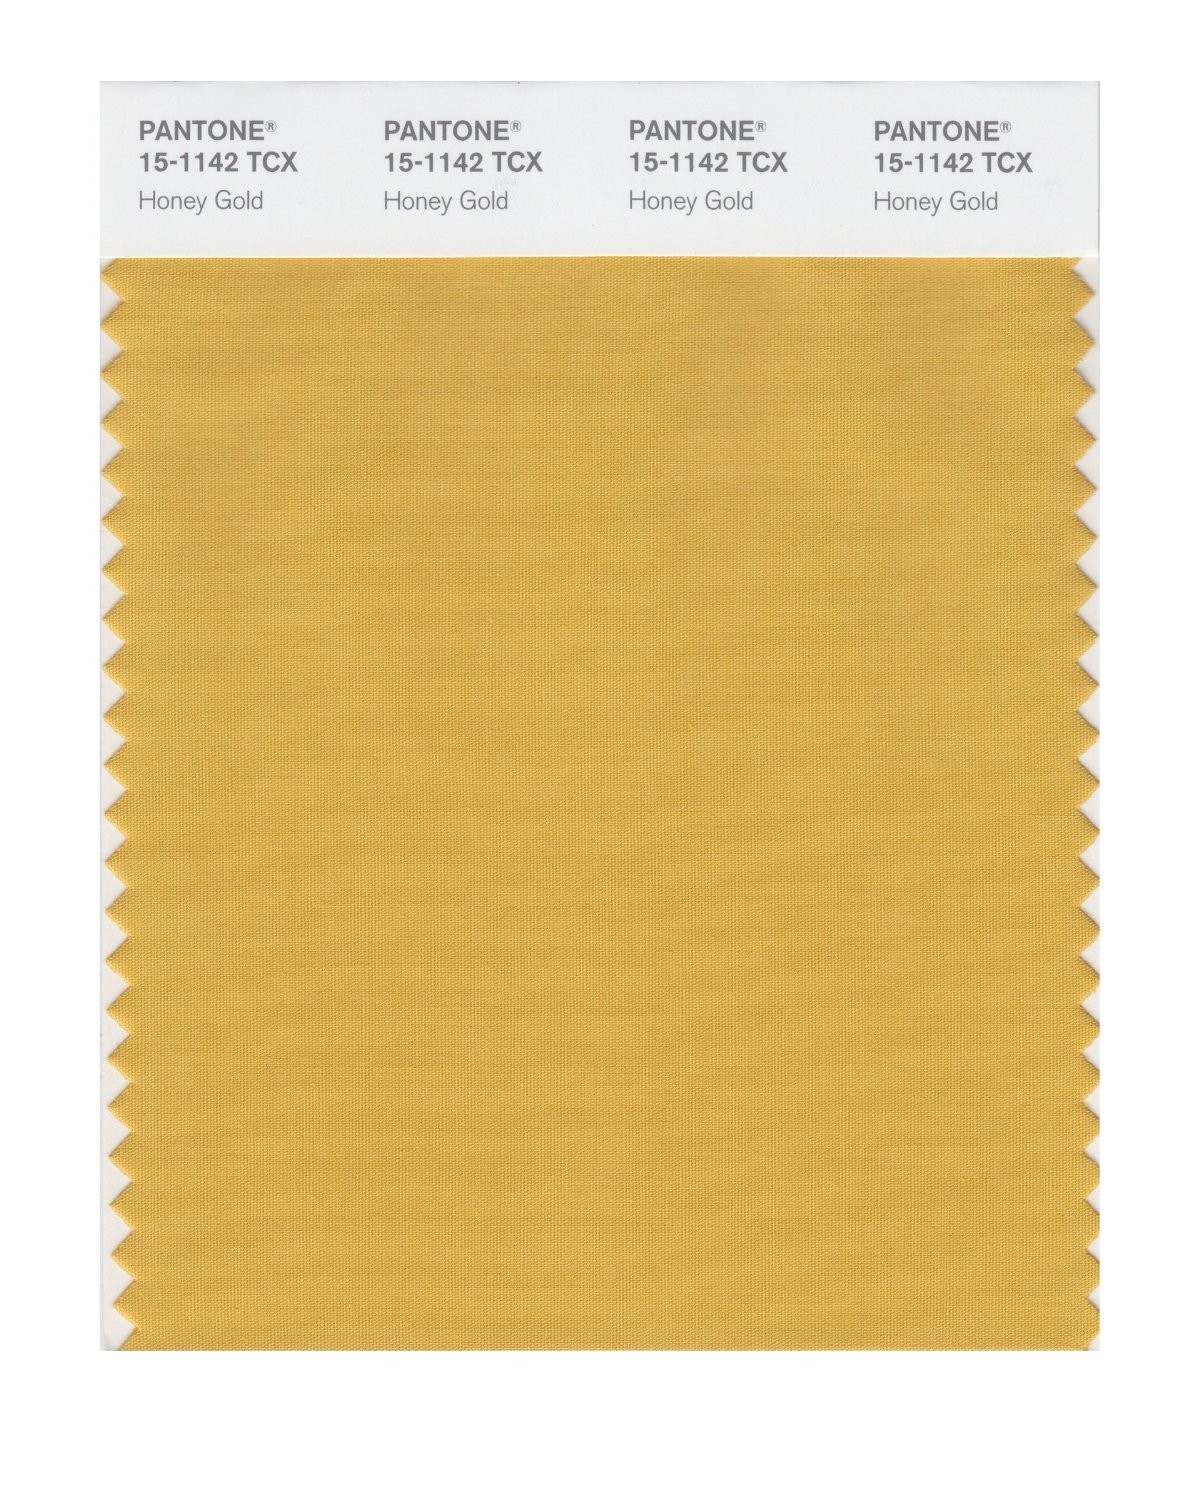 Pantone 15-1142 TCX Swatch Card Honey Gold